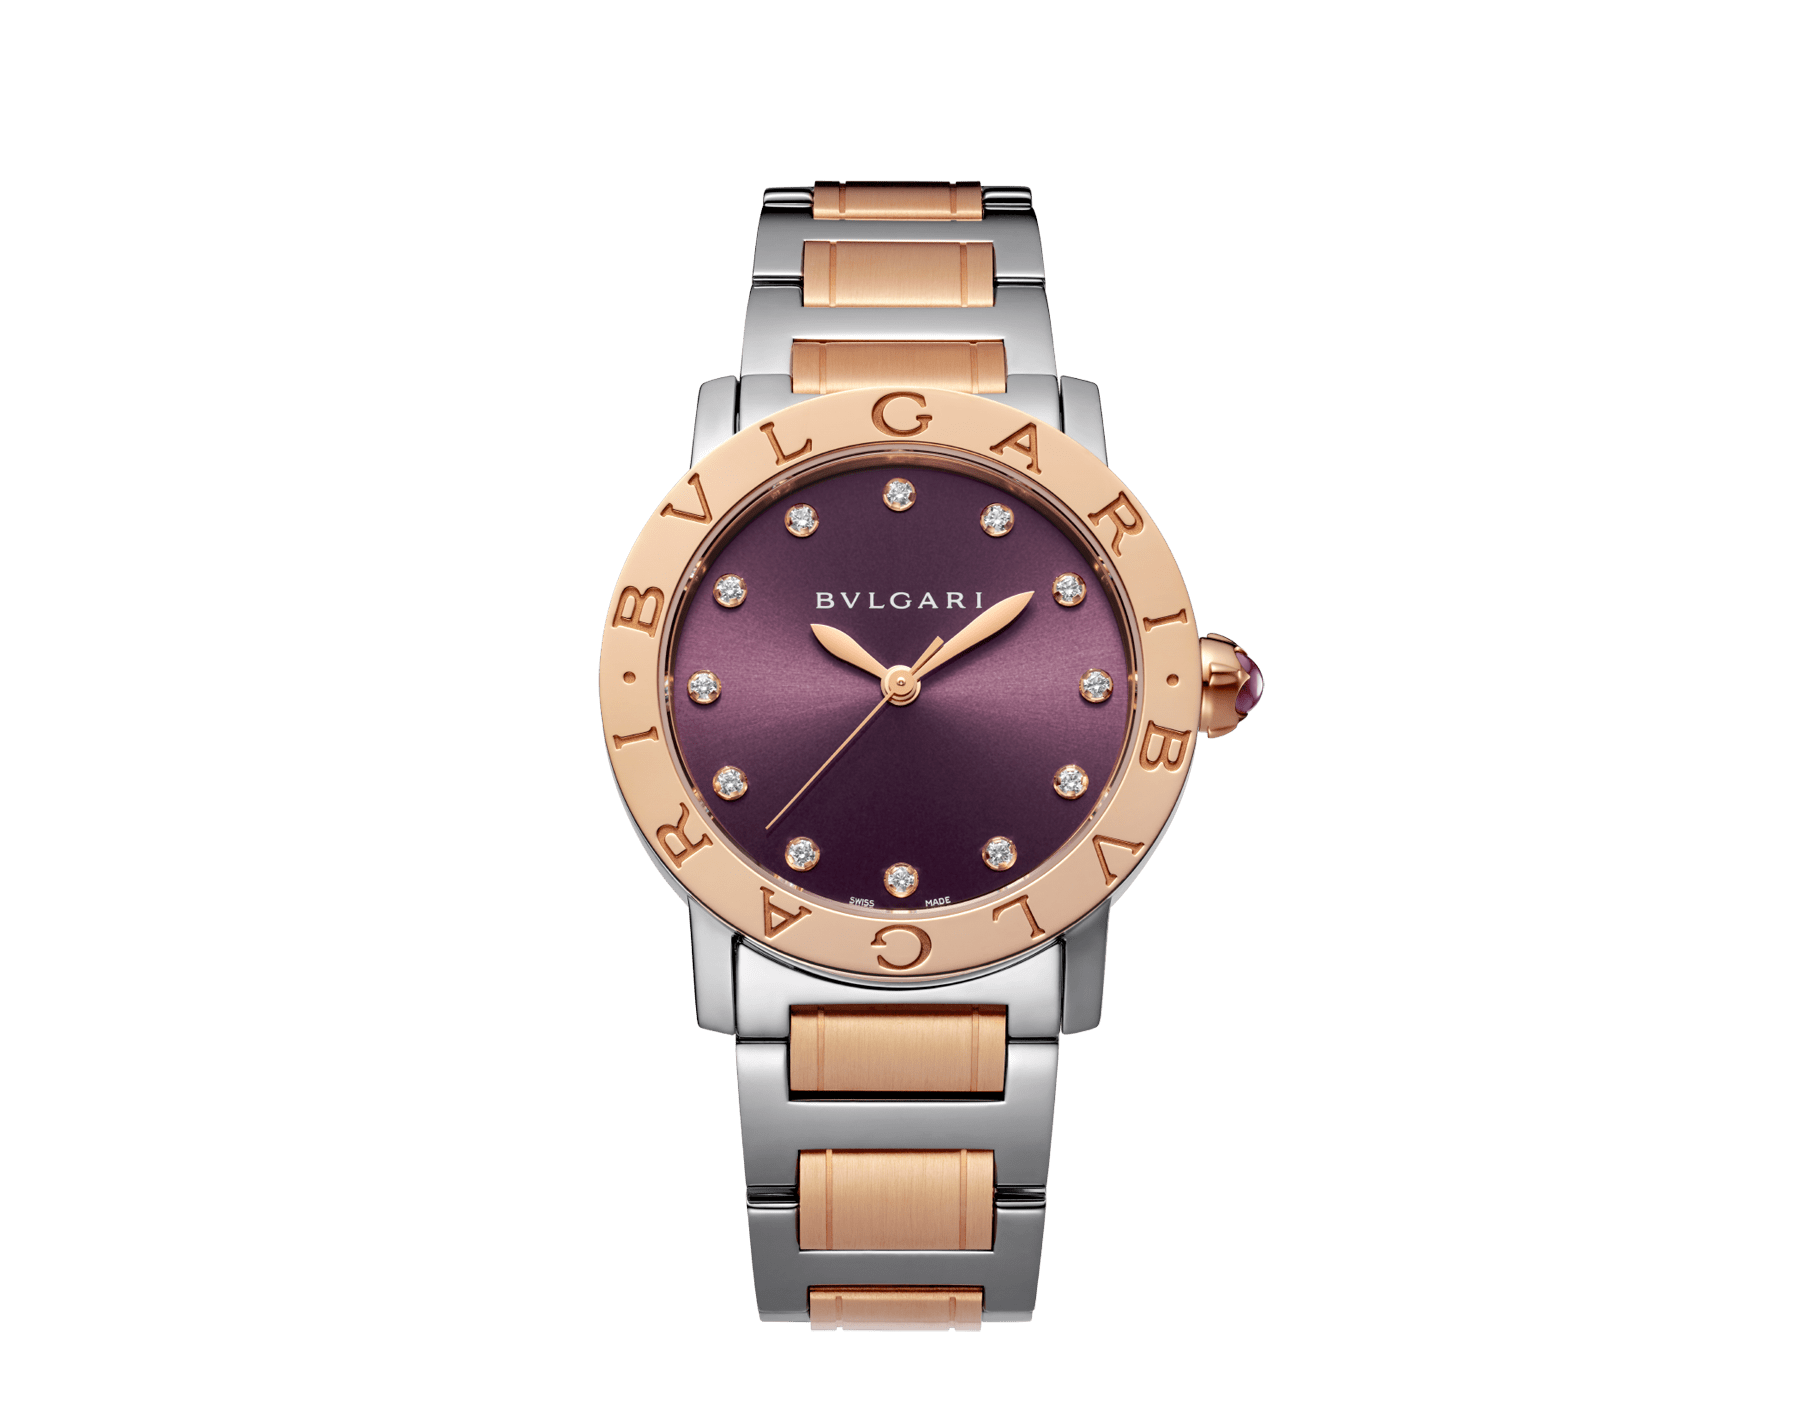 BVLGARI BVLGARI LADY watch in stainless steel and 18 kt rose gold case and bracelet, with purple satiné soleil lacquered dial and diamond indexes 102622 image 1